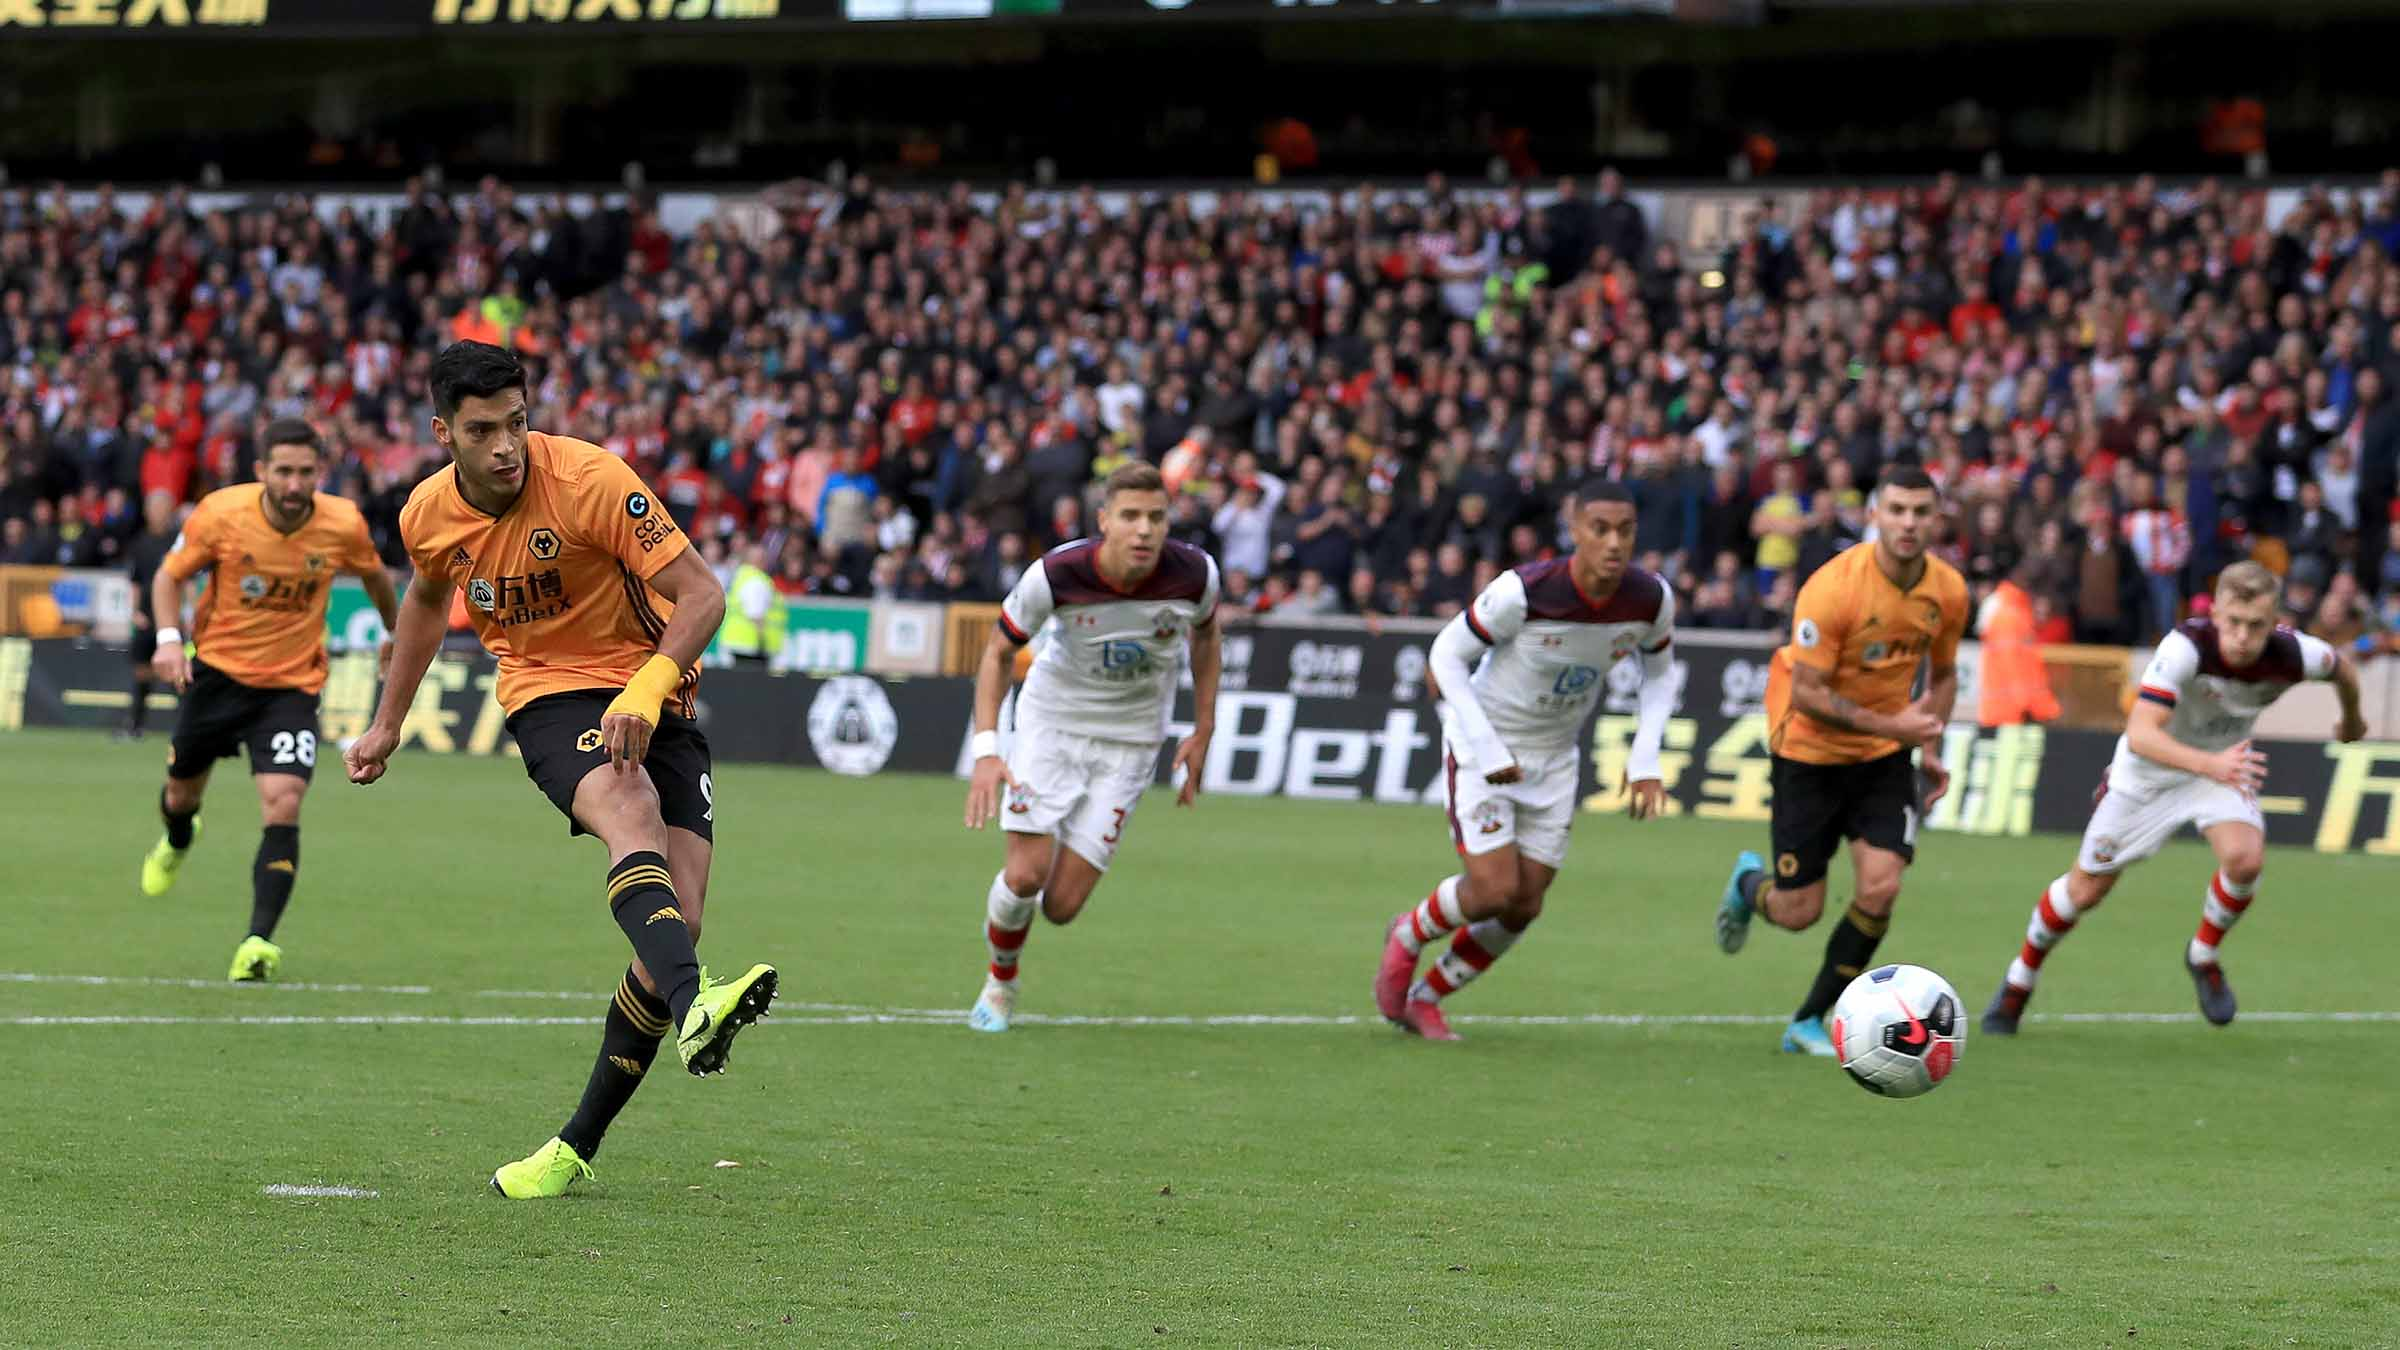 Wolves 1-1 Southampton | Match report